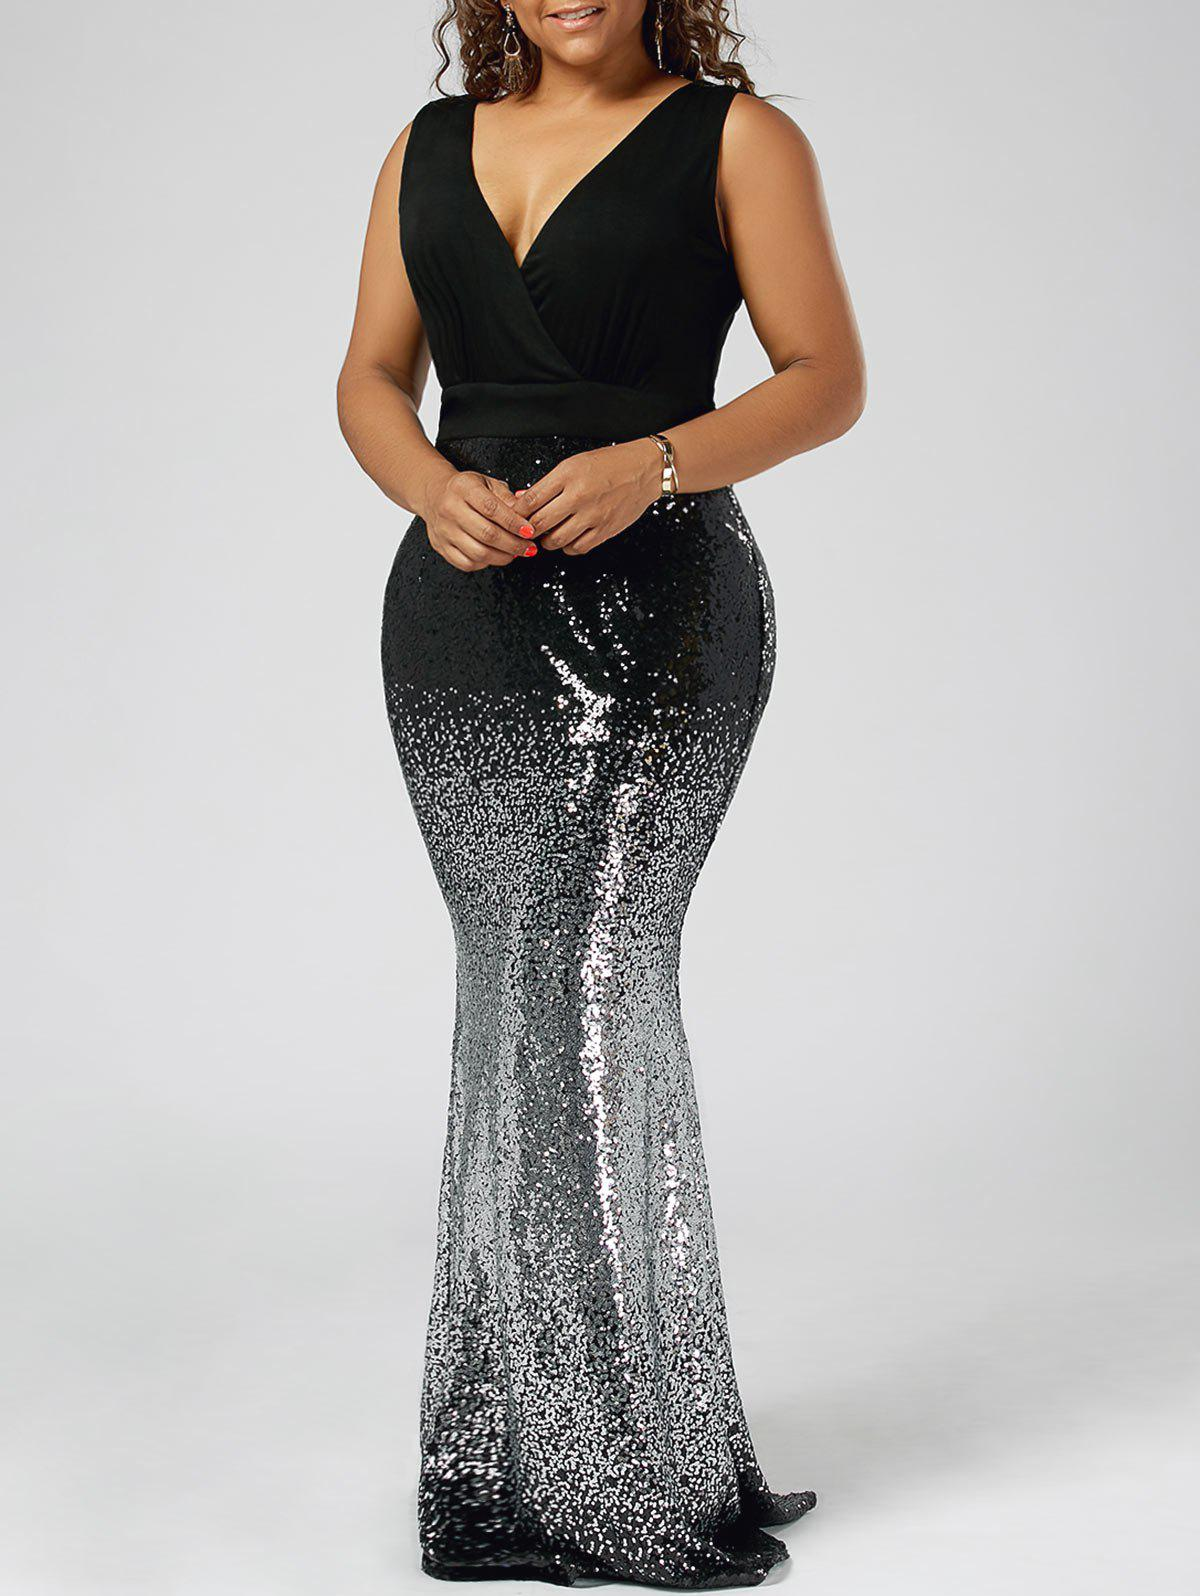 Plus Size Sequins Fishtail Maxi Evening Prom DressWOMEN<br><br>Size: 5XL; Color: BLACK; Style: Brief; Material: Cotton,Spandex; Silhouette: Trumpet/Mermaid; Dresses Length: Floor-Length; Neckline: V-Neck; Sleeve Length: Sleeveless; Embellishment: Sequins; Pattern Type: Solid; With Belt: No; Season: Summer; Weight: 0.6500kg; Package Contents: 1 x Dress;